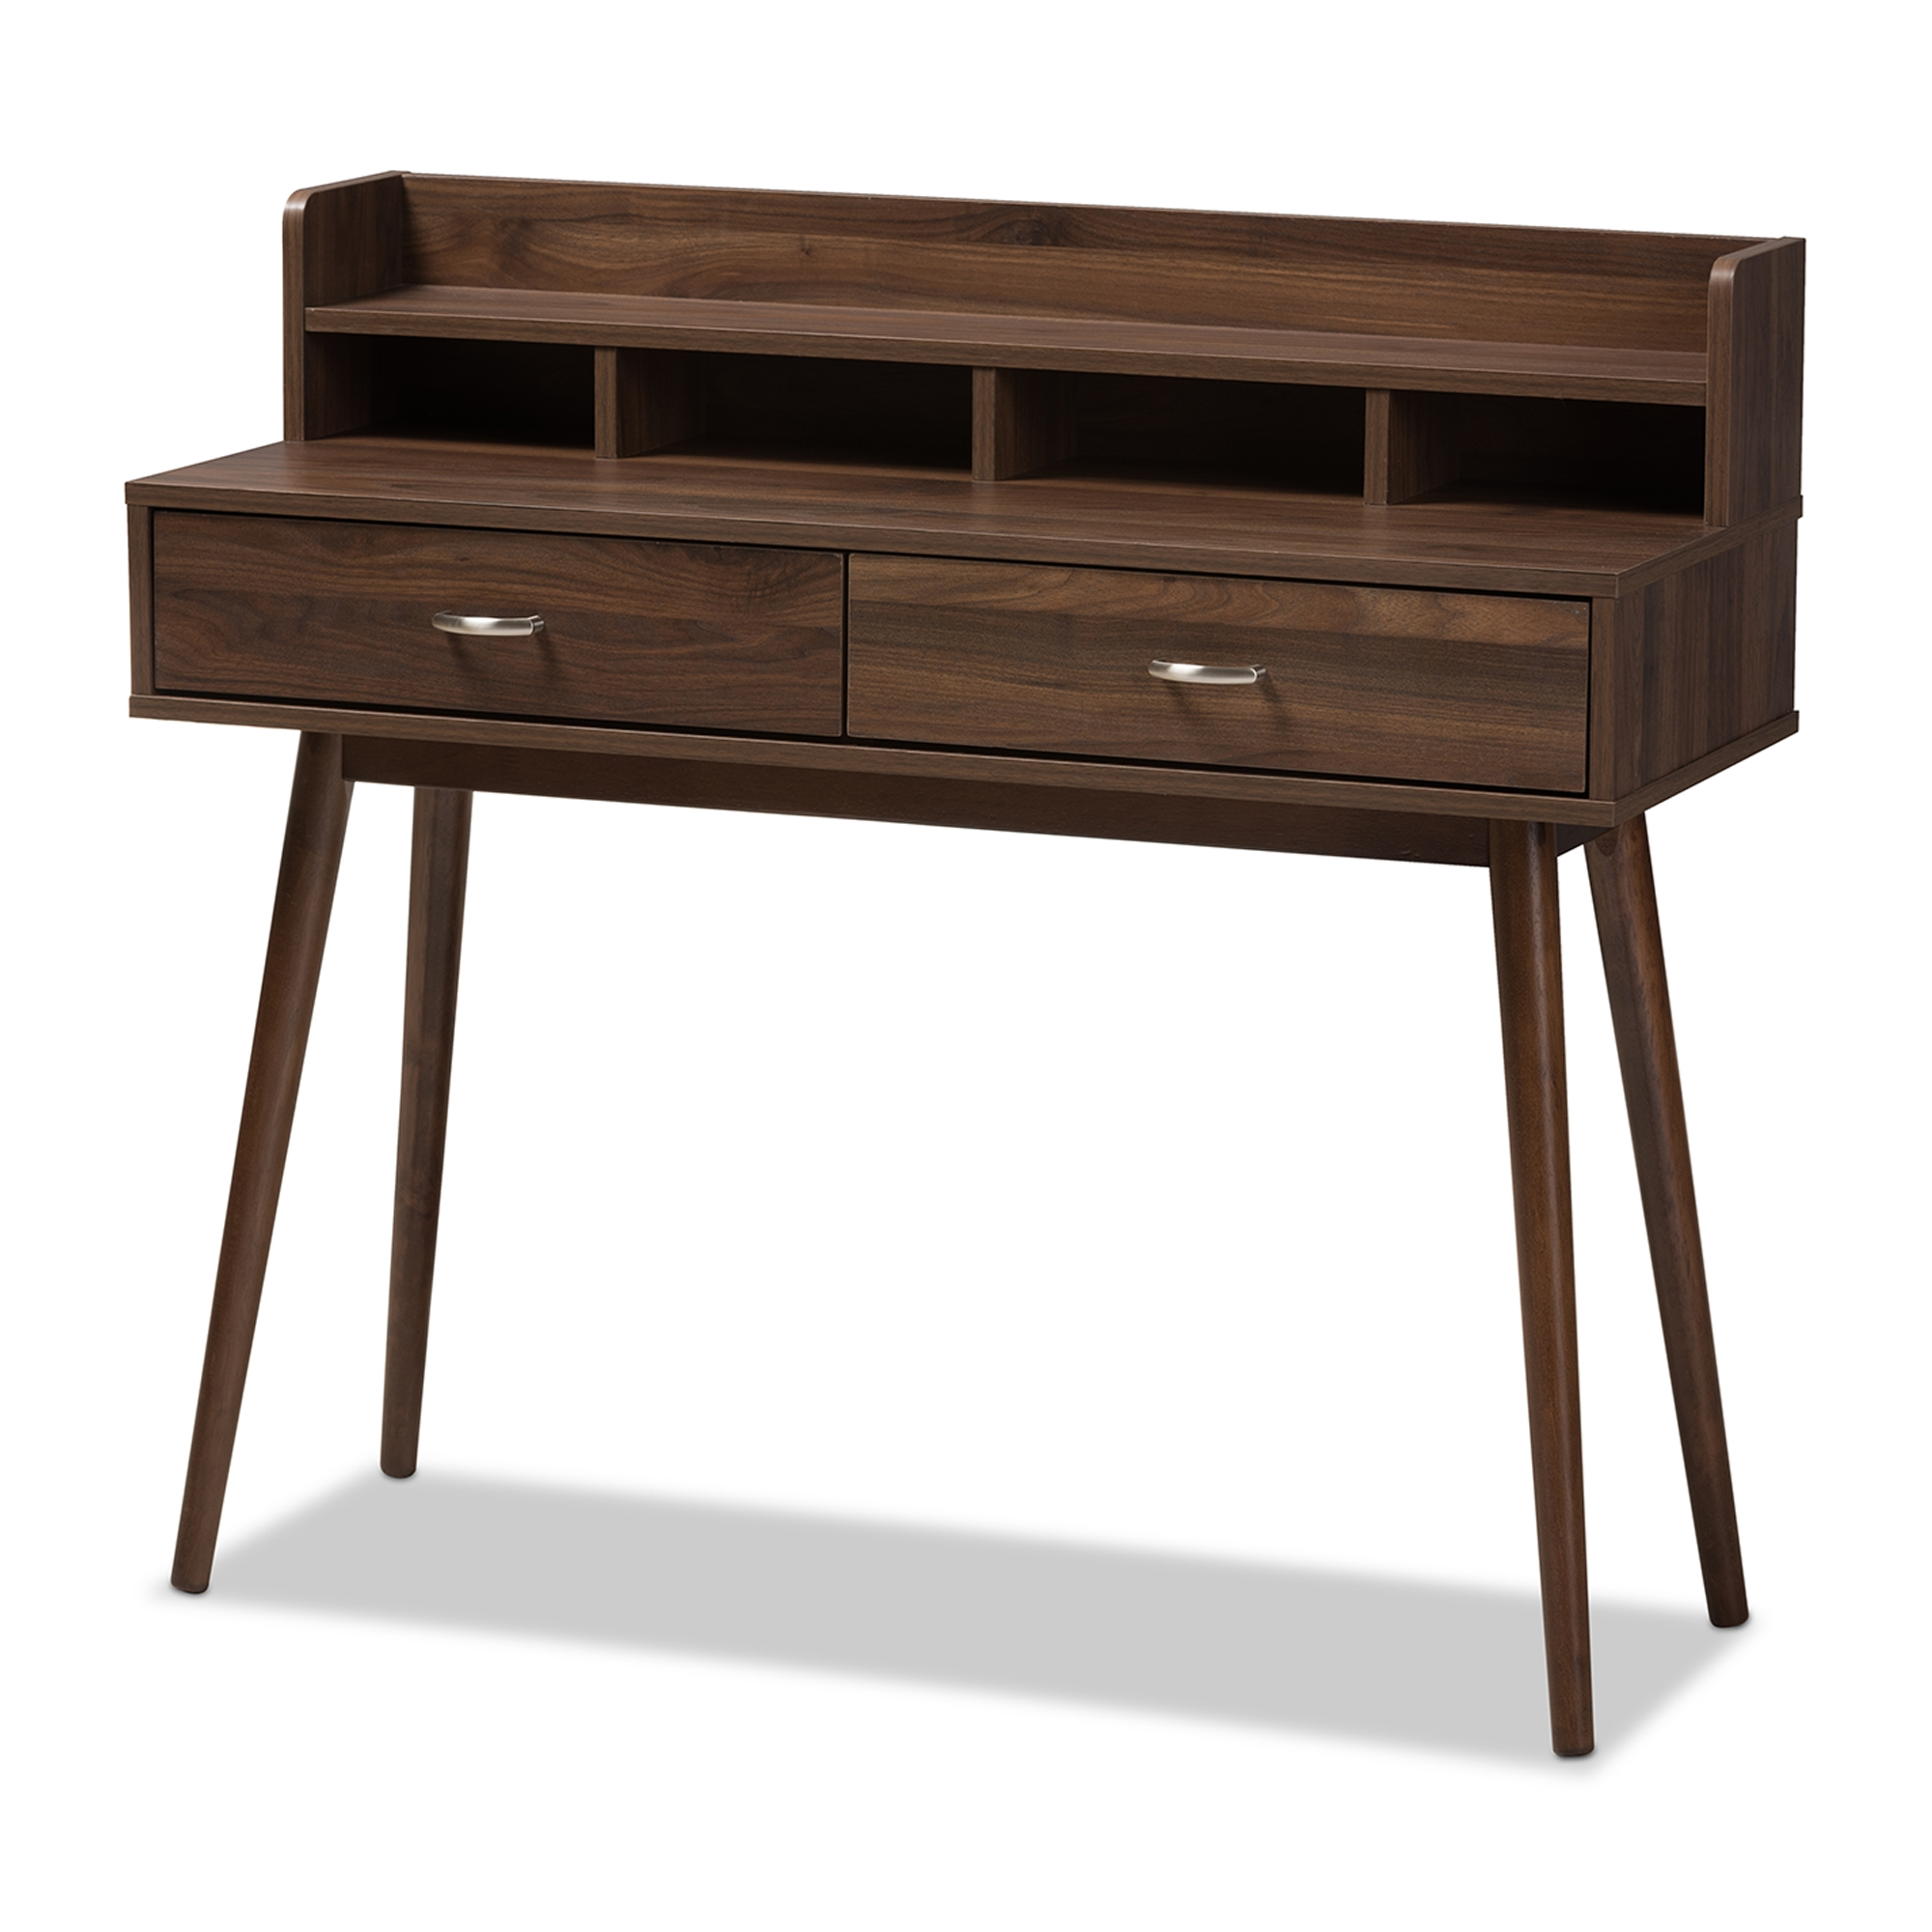 Image of: Baxton Studio Disa Mid Century Modern Walnut Brown Finished 2 Drawer Desk